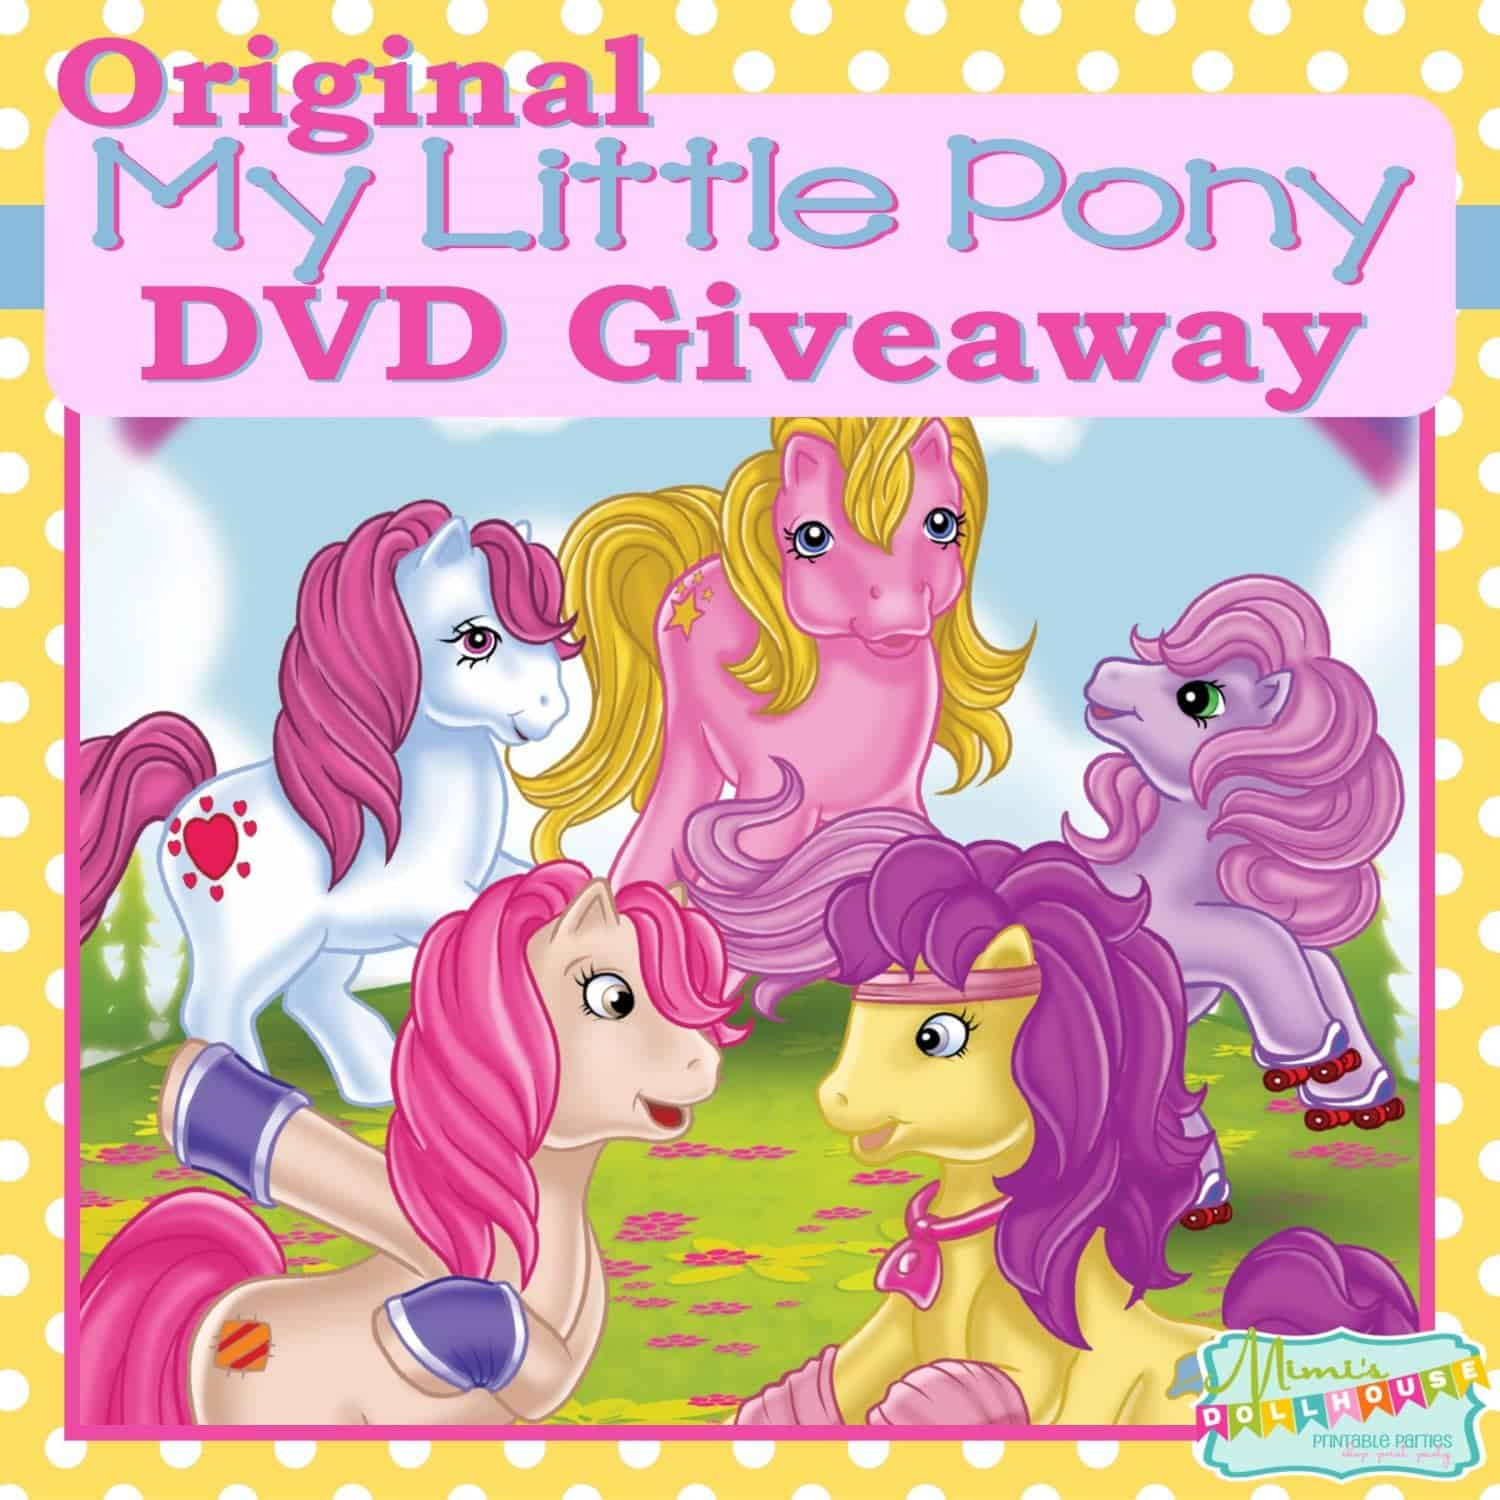 GIVEAWAY: Classic My Little Pony Tales DVD